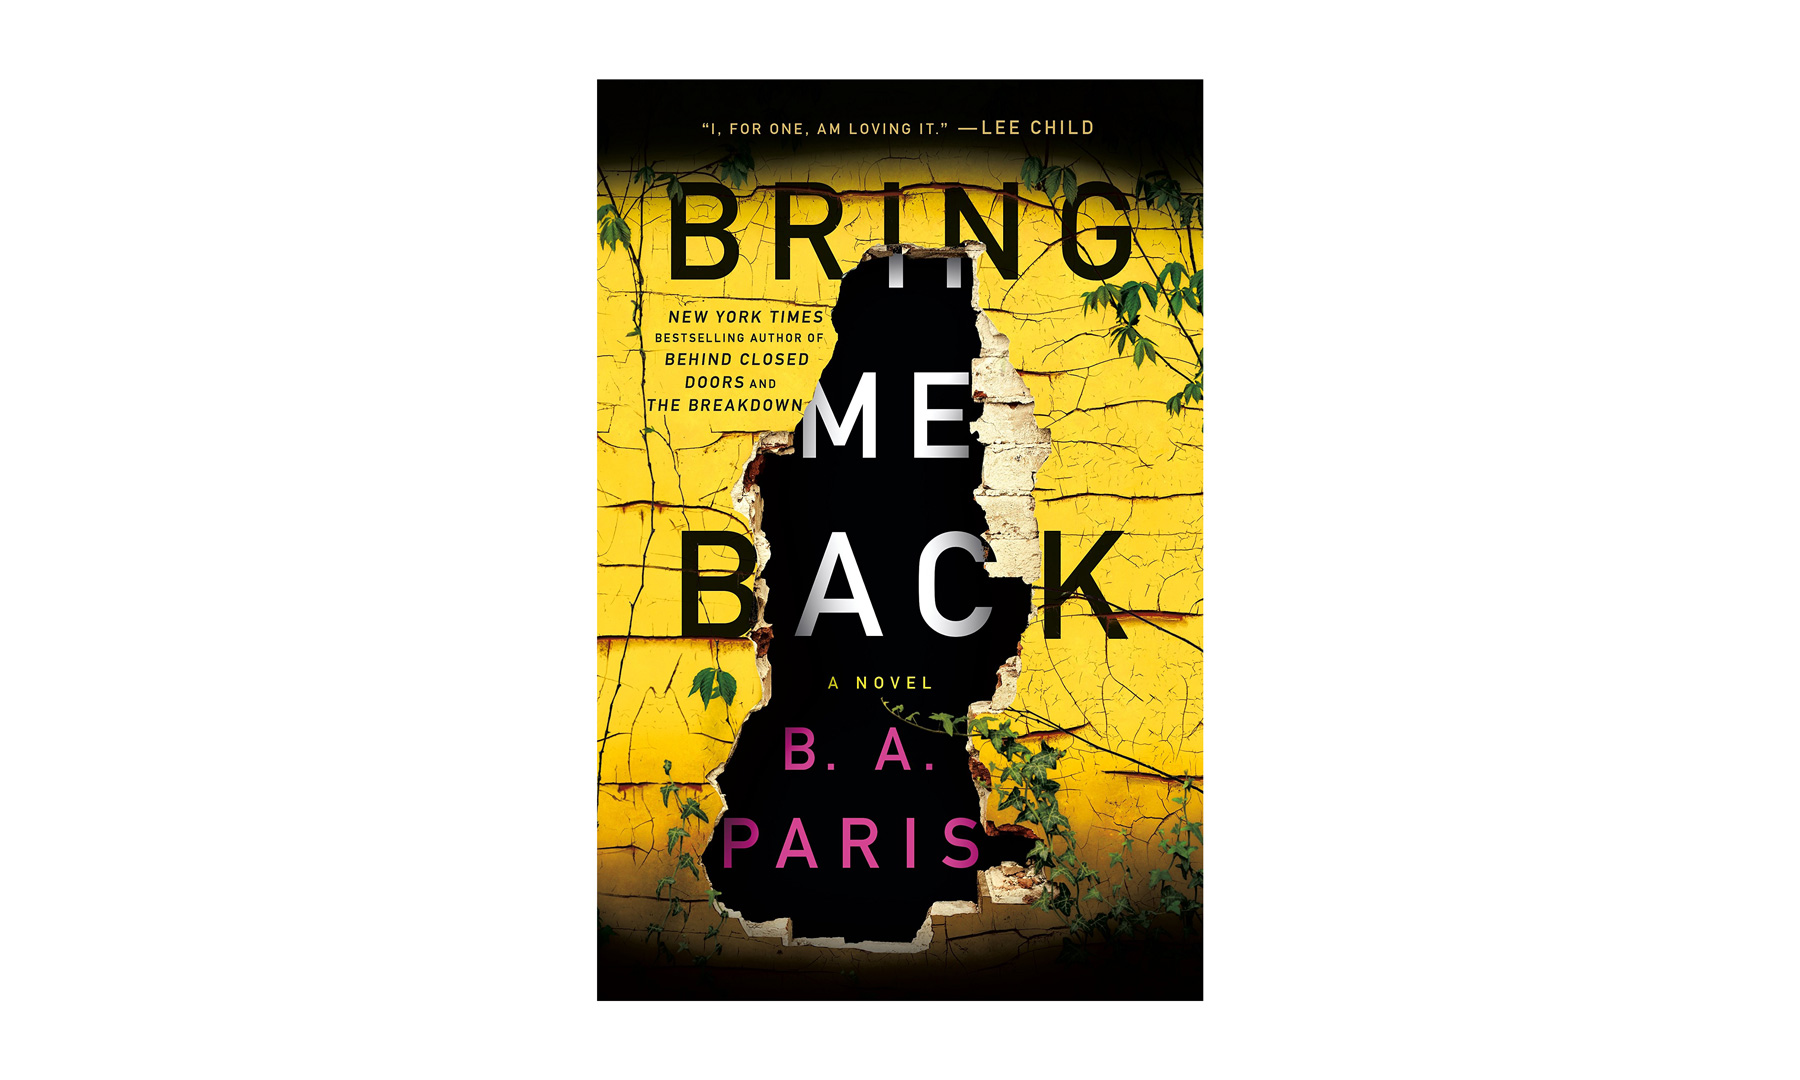 Barnes and Noble Book Sale Bring Me Back, by B. A. Paris